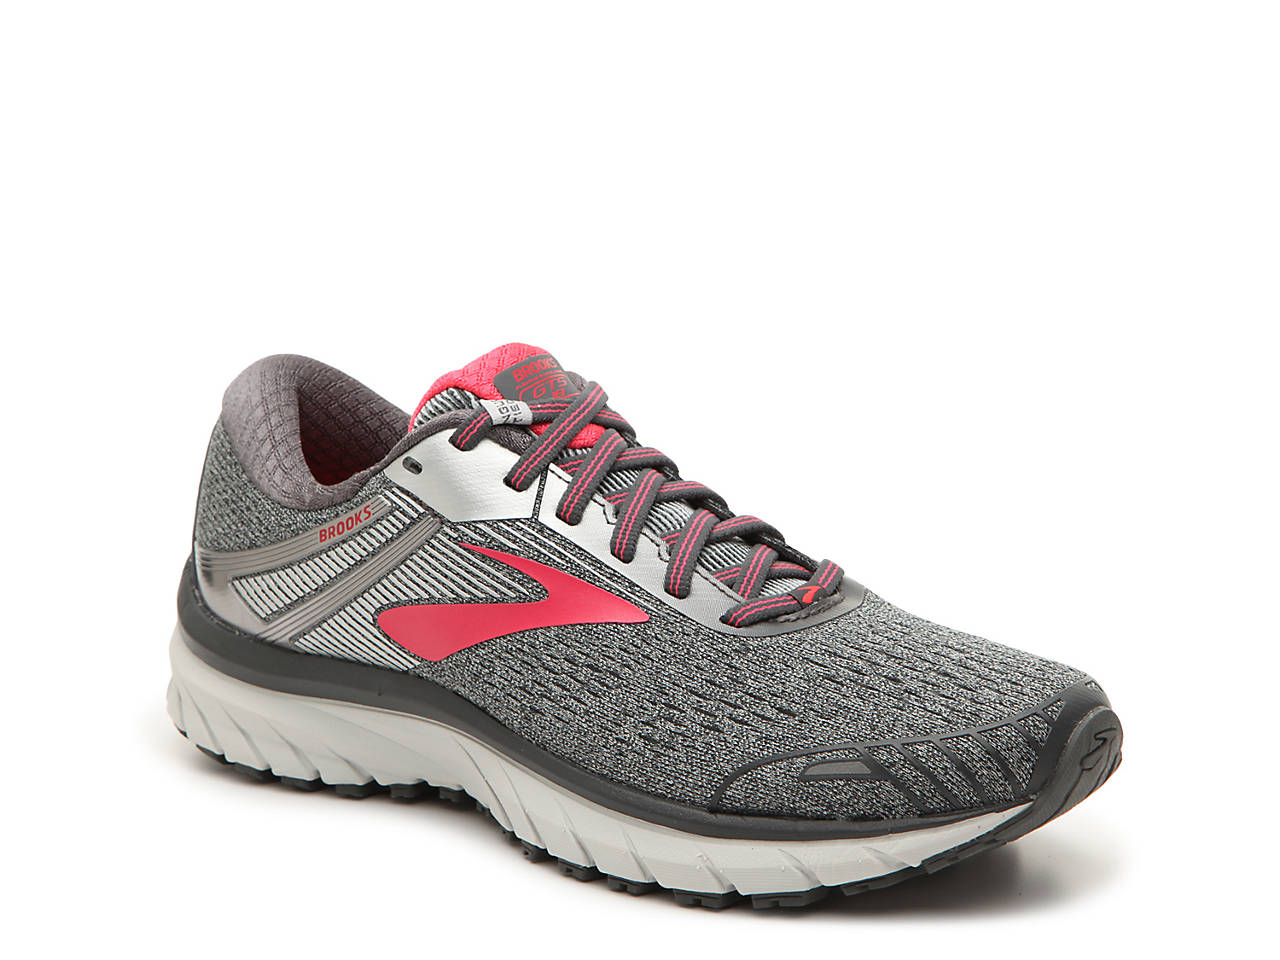 the latest eaa2d 206f8 Adrenaline GTS 18 Performance Running Shoe - Women's